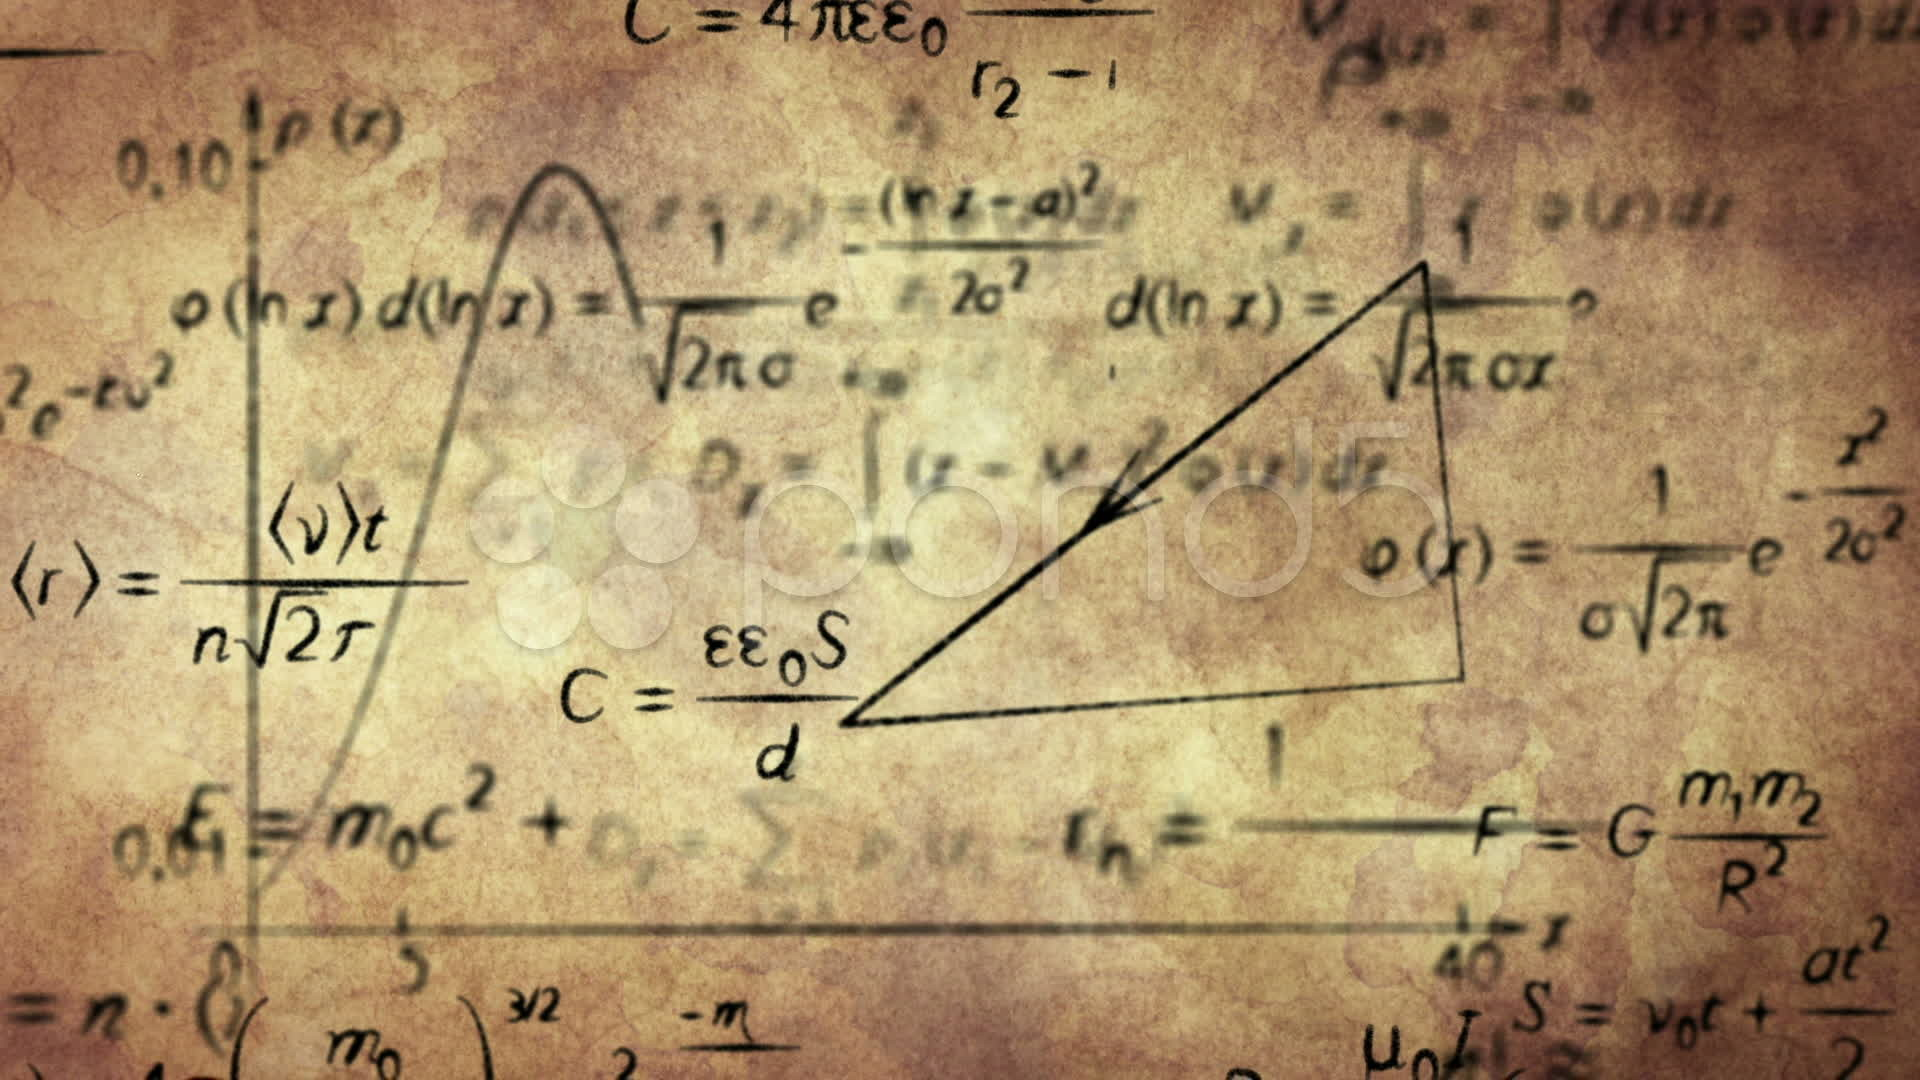 Physics Equations Wallpaper Math Formulas On Old Pictures